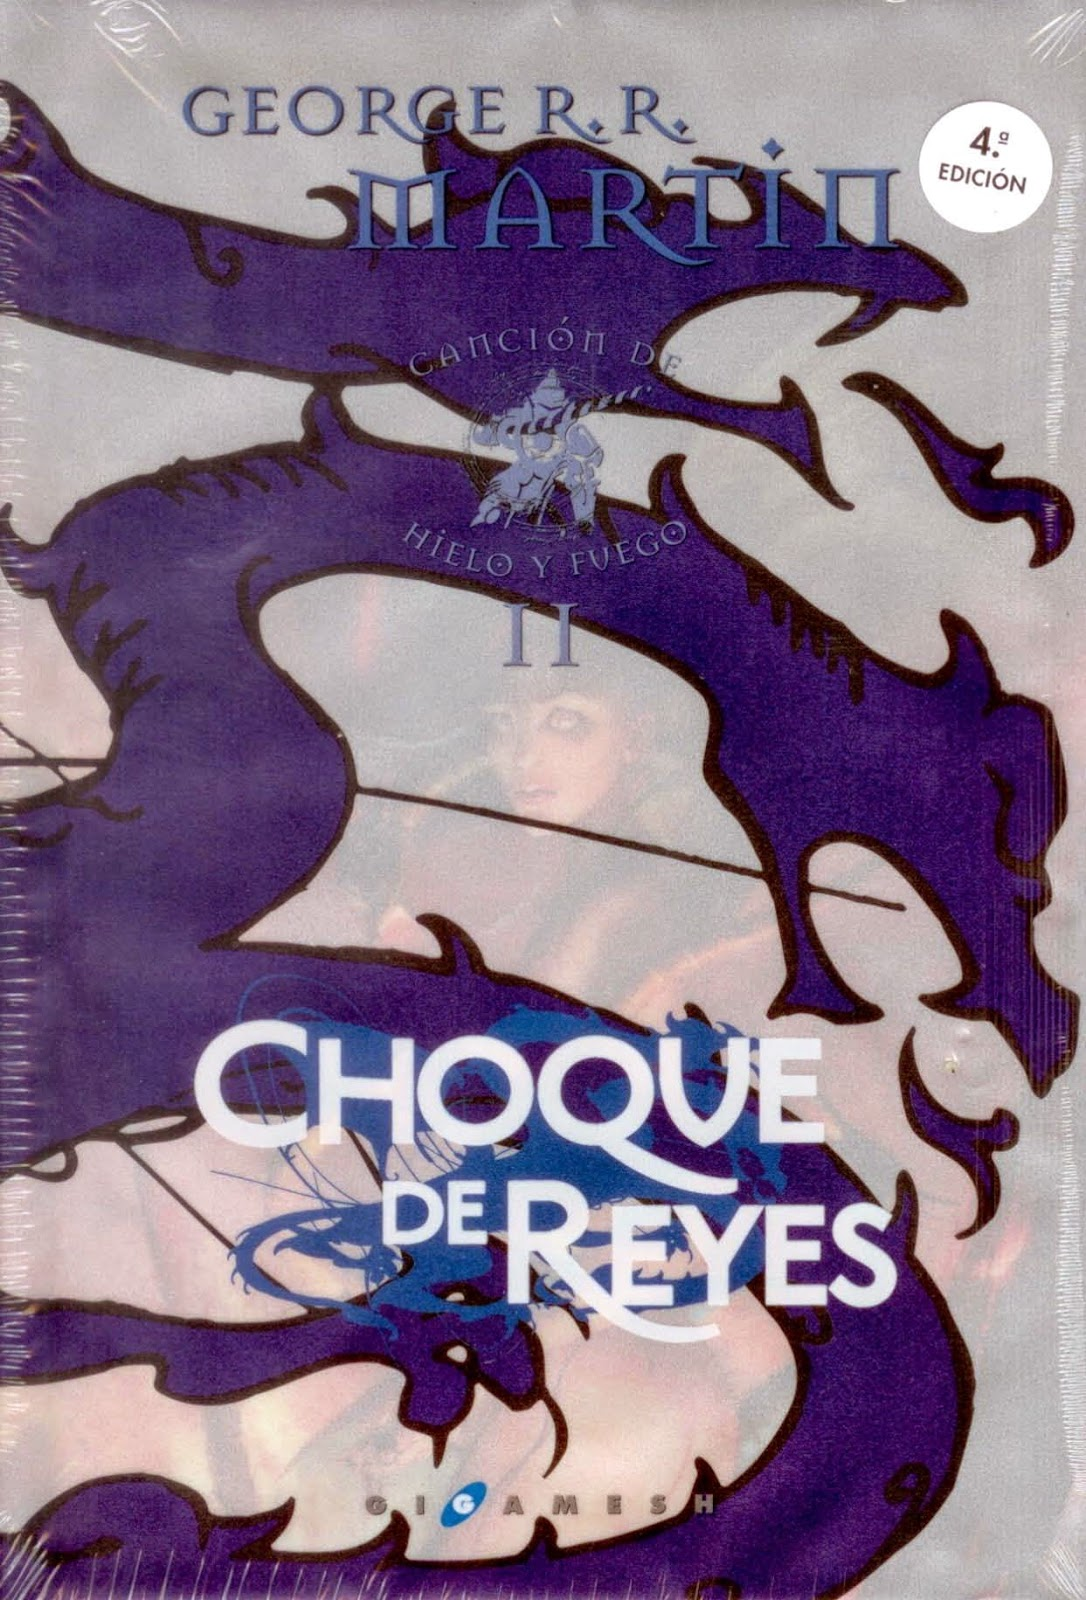 https://www.goodreads.com/book/show/10770824-choque-de-reyes